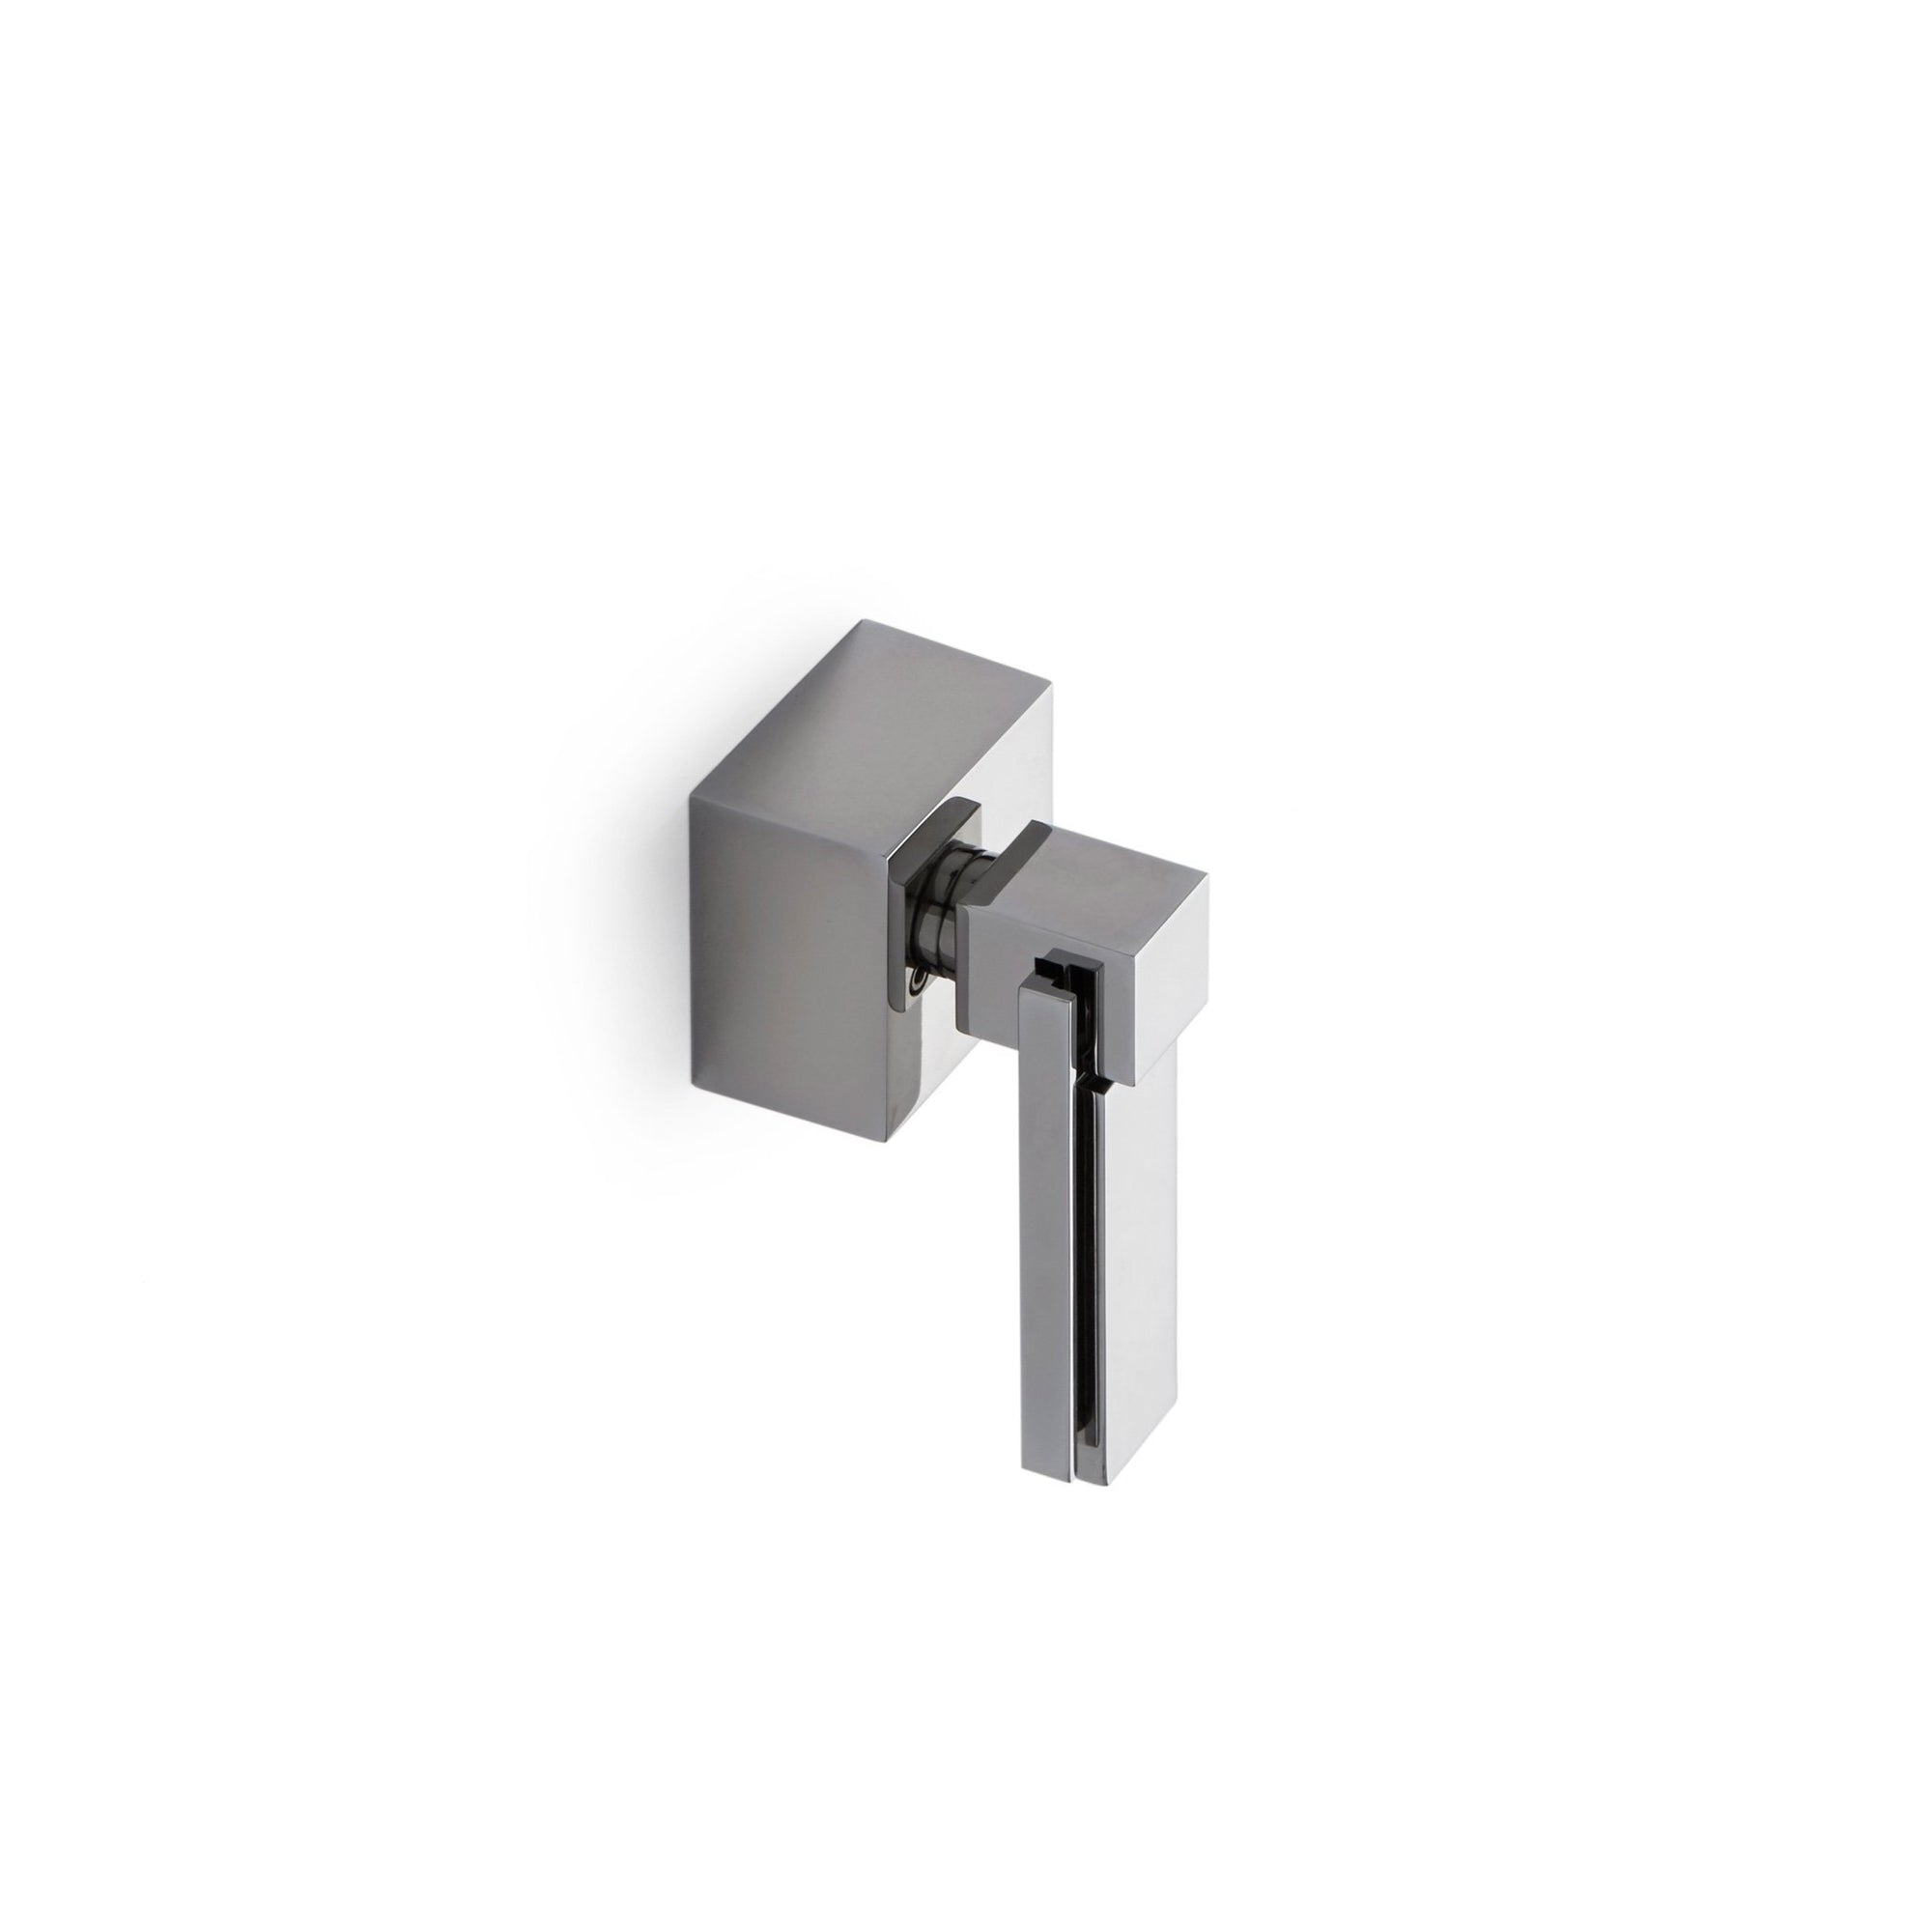 2020LV-ESC-CP Sherle Wagner International Apollo Lever Volume Control and Diverter Trim in Polished Chrome metal finish